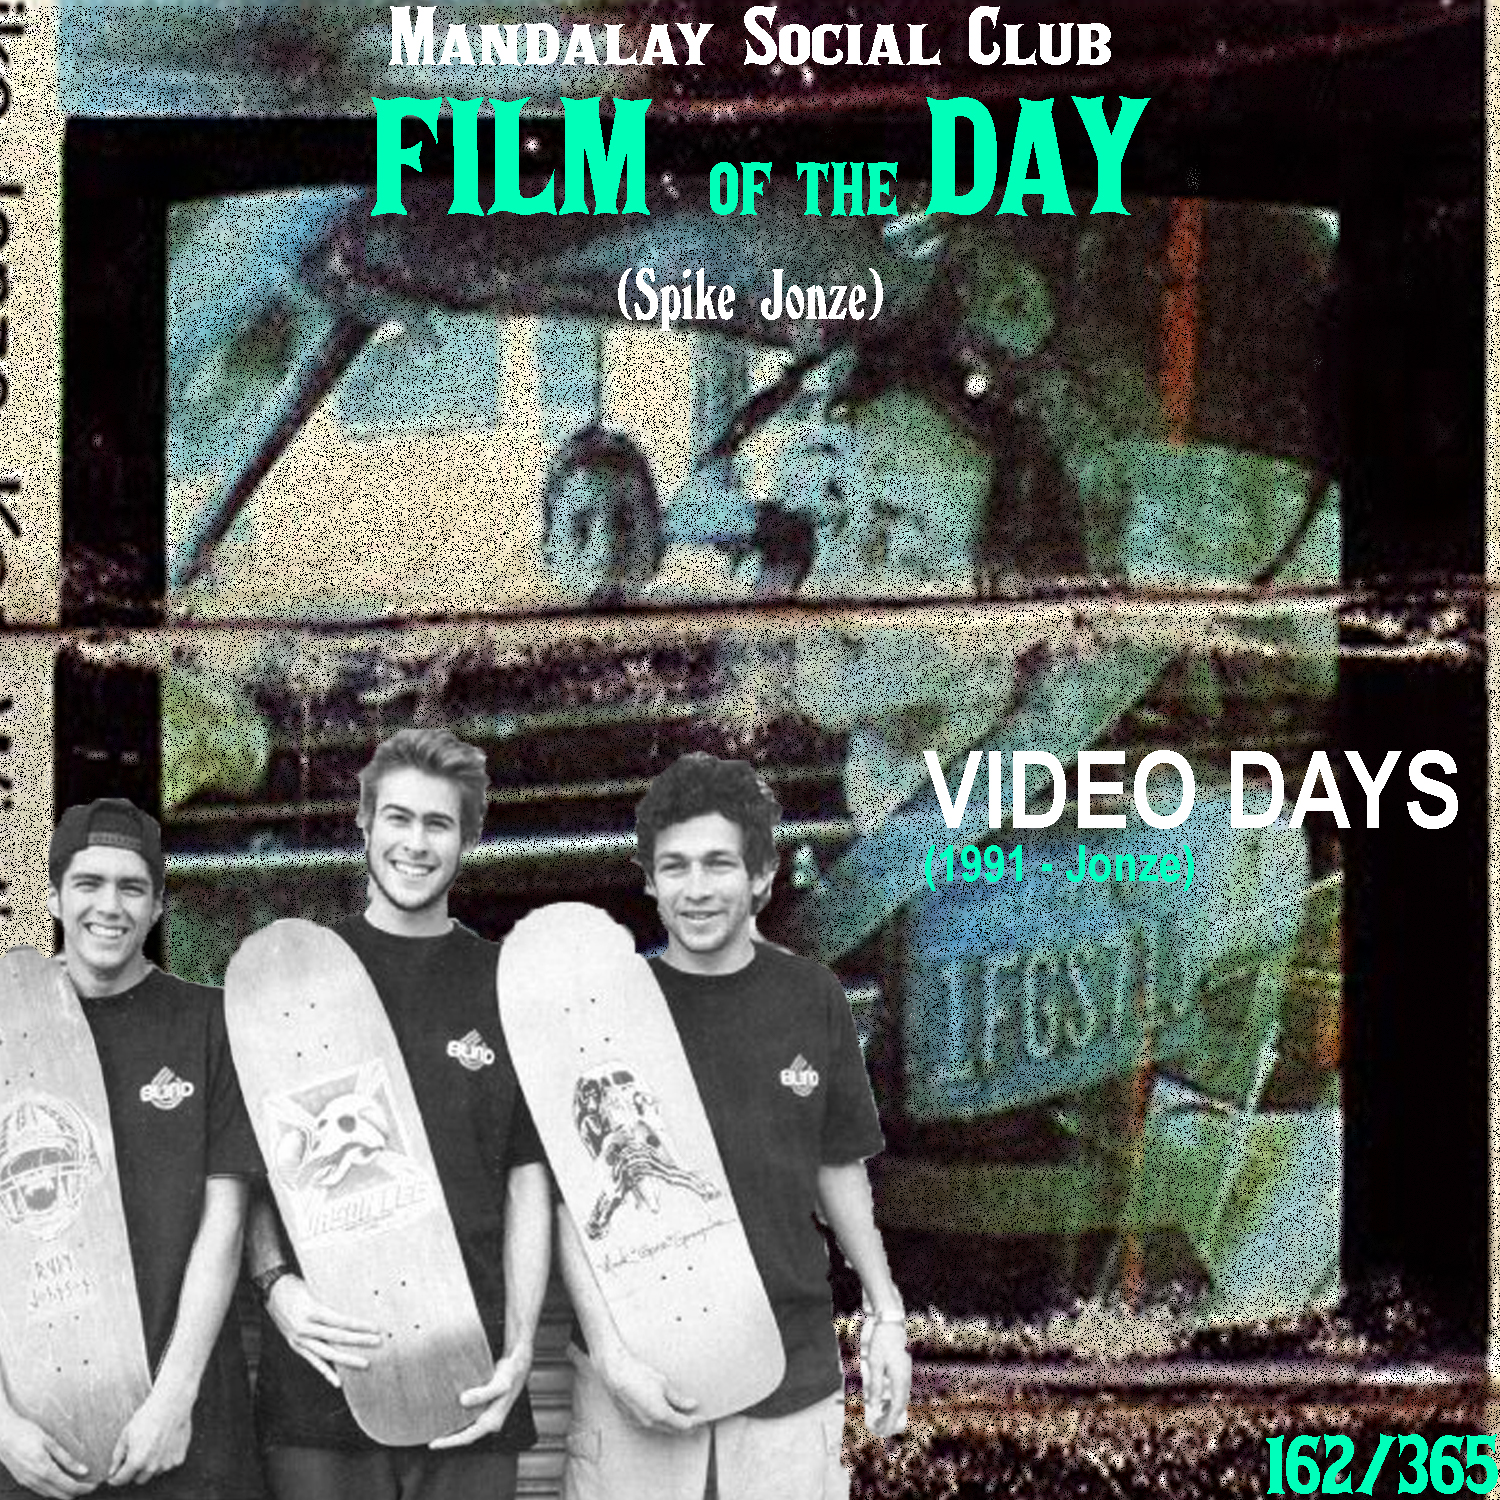 VIDEO DAYS     (dir. Spike Jonze)   Spike Jonze revolutionized the skate industry with his iconic and revolutionary photography.   Video Days  was the skate video that changed everything for both Spike and the sport. Spike set the standard for skate videos and photography with his creative approach to filming skateboarders. Video Days is widely regarded as the single most influential skate video since Spike could actually skate and follow around the skaters as they ride and do street tricks as opposed to the traditional way of just standing there and cutting shots of skaters going by and doing tricks. The film has different segments with different skaters including Mark Gonzalez, Jason Lee, and a young Guy Mariano.     5/5     WATCH: YouTube